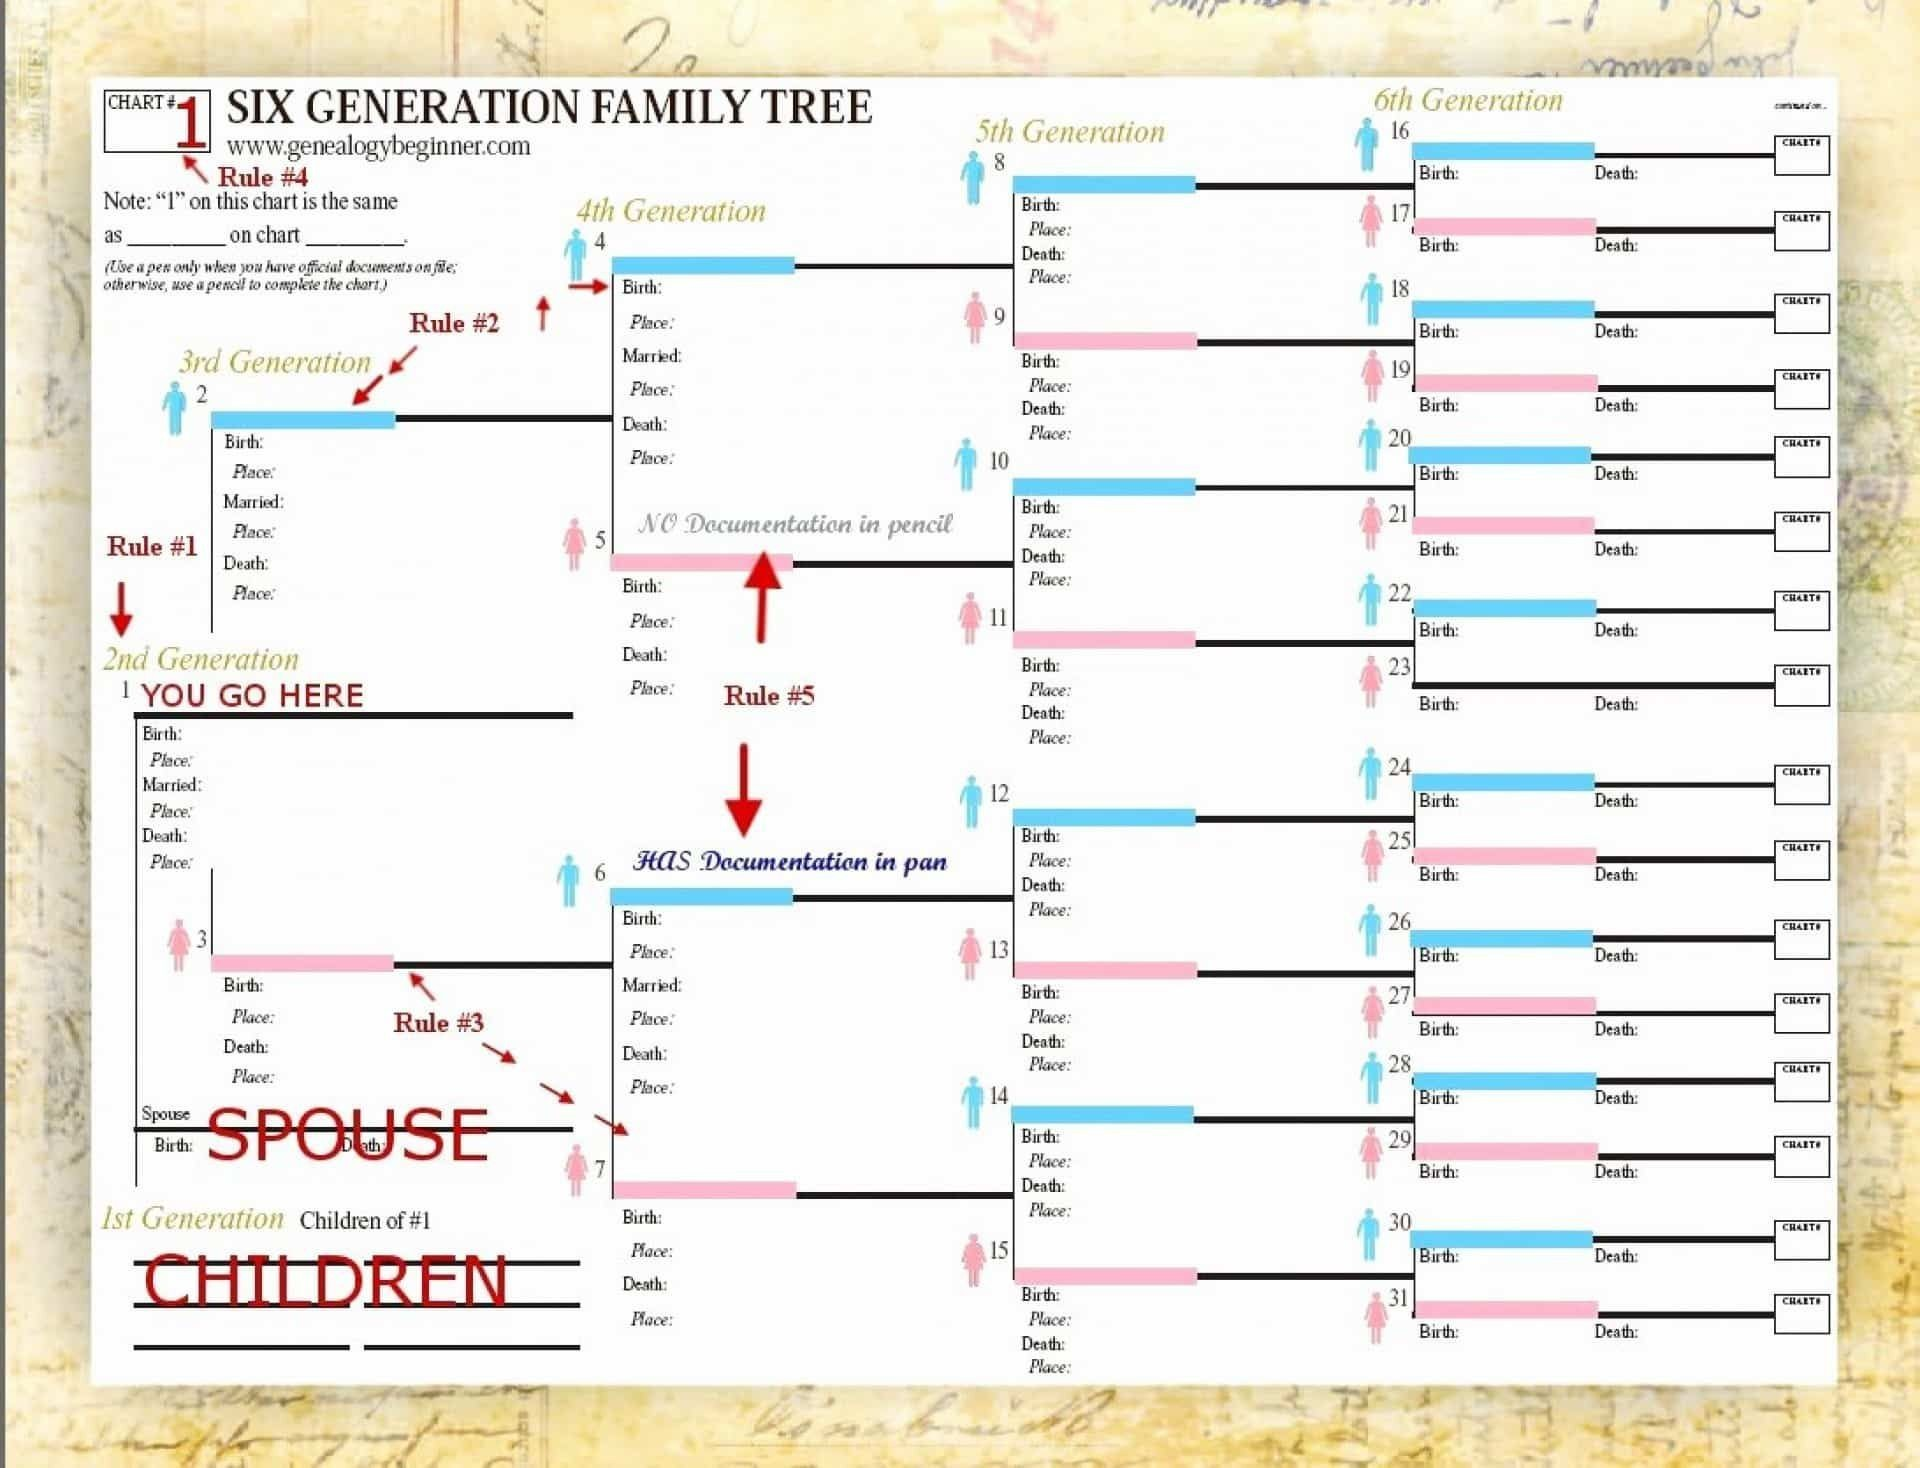 001 Archaicawful 7 Generation Family Tree Template Design  Blank Free Editable1920